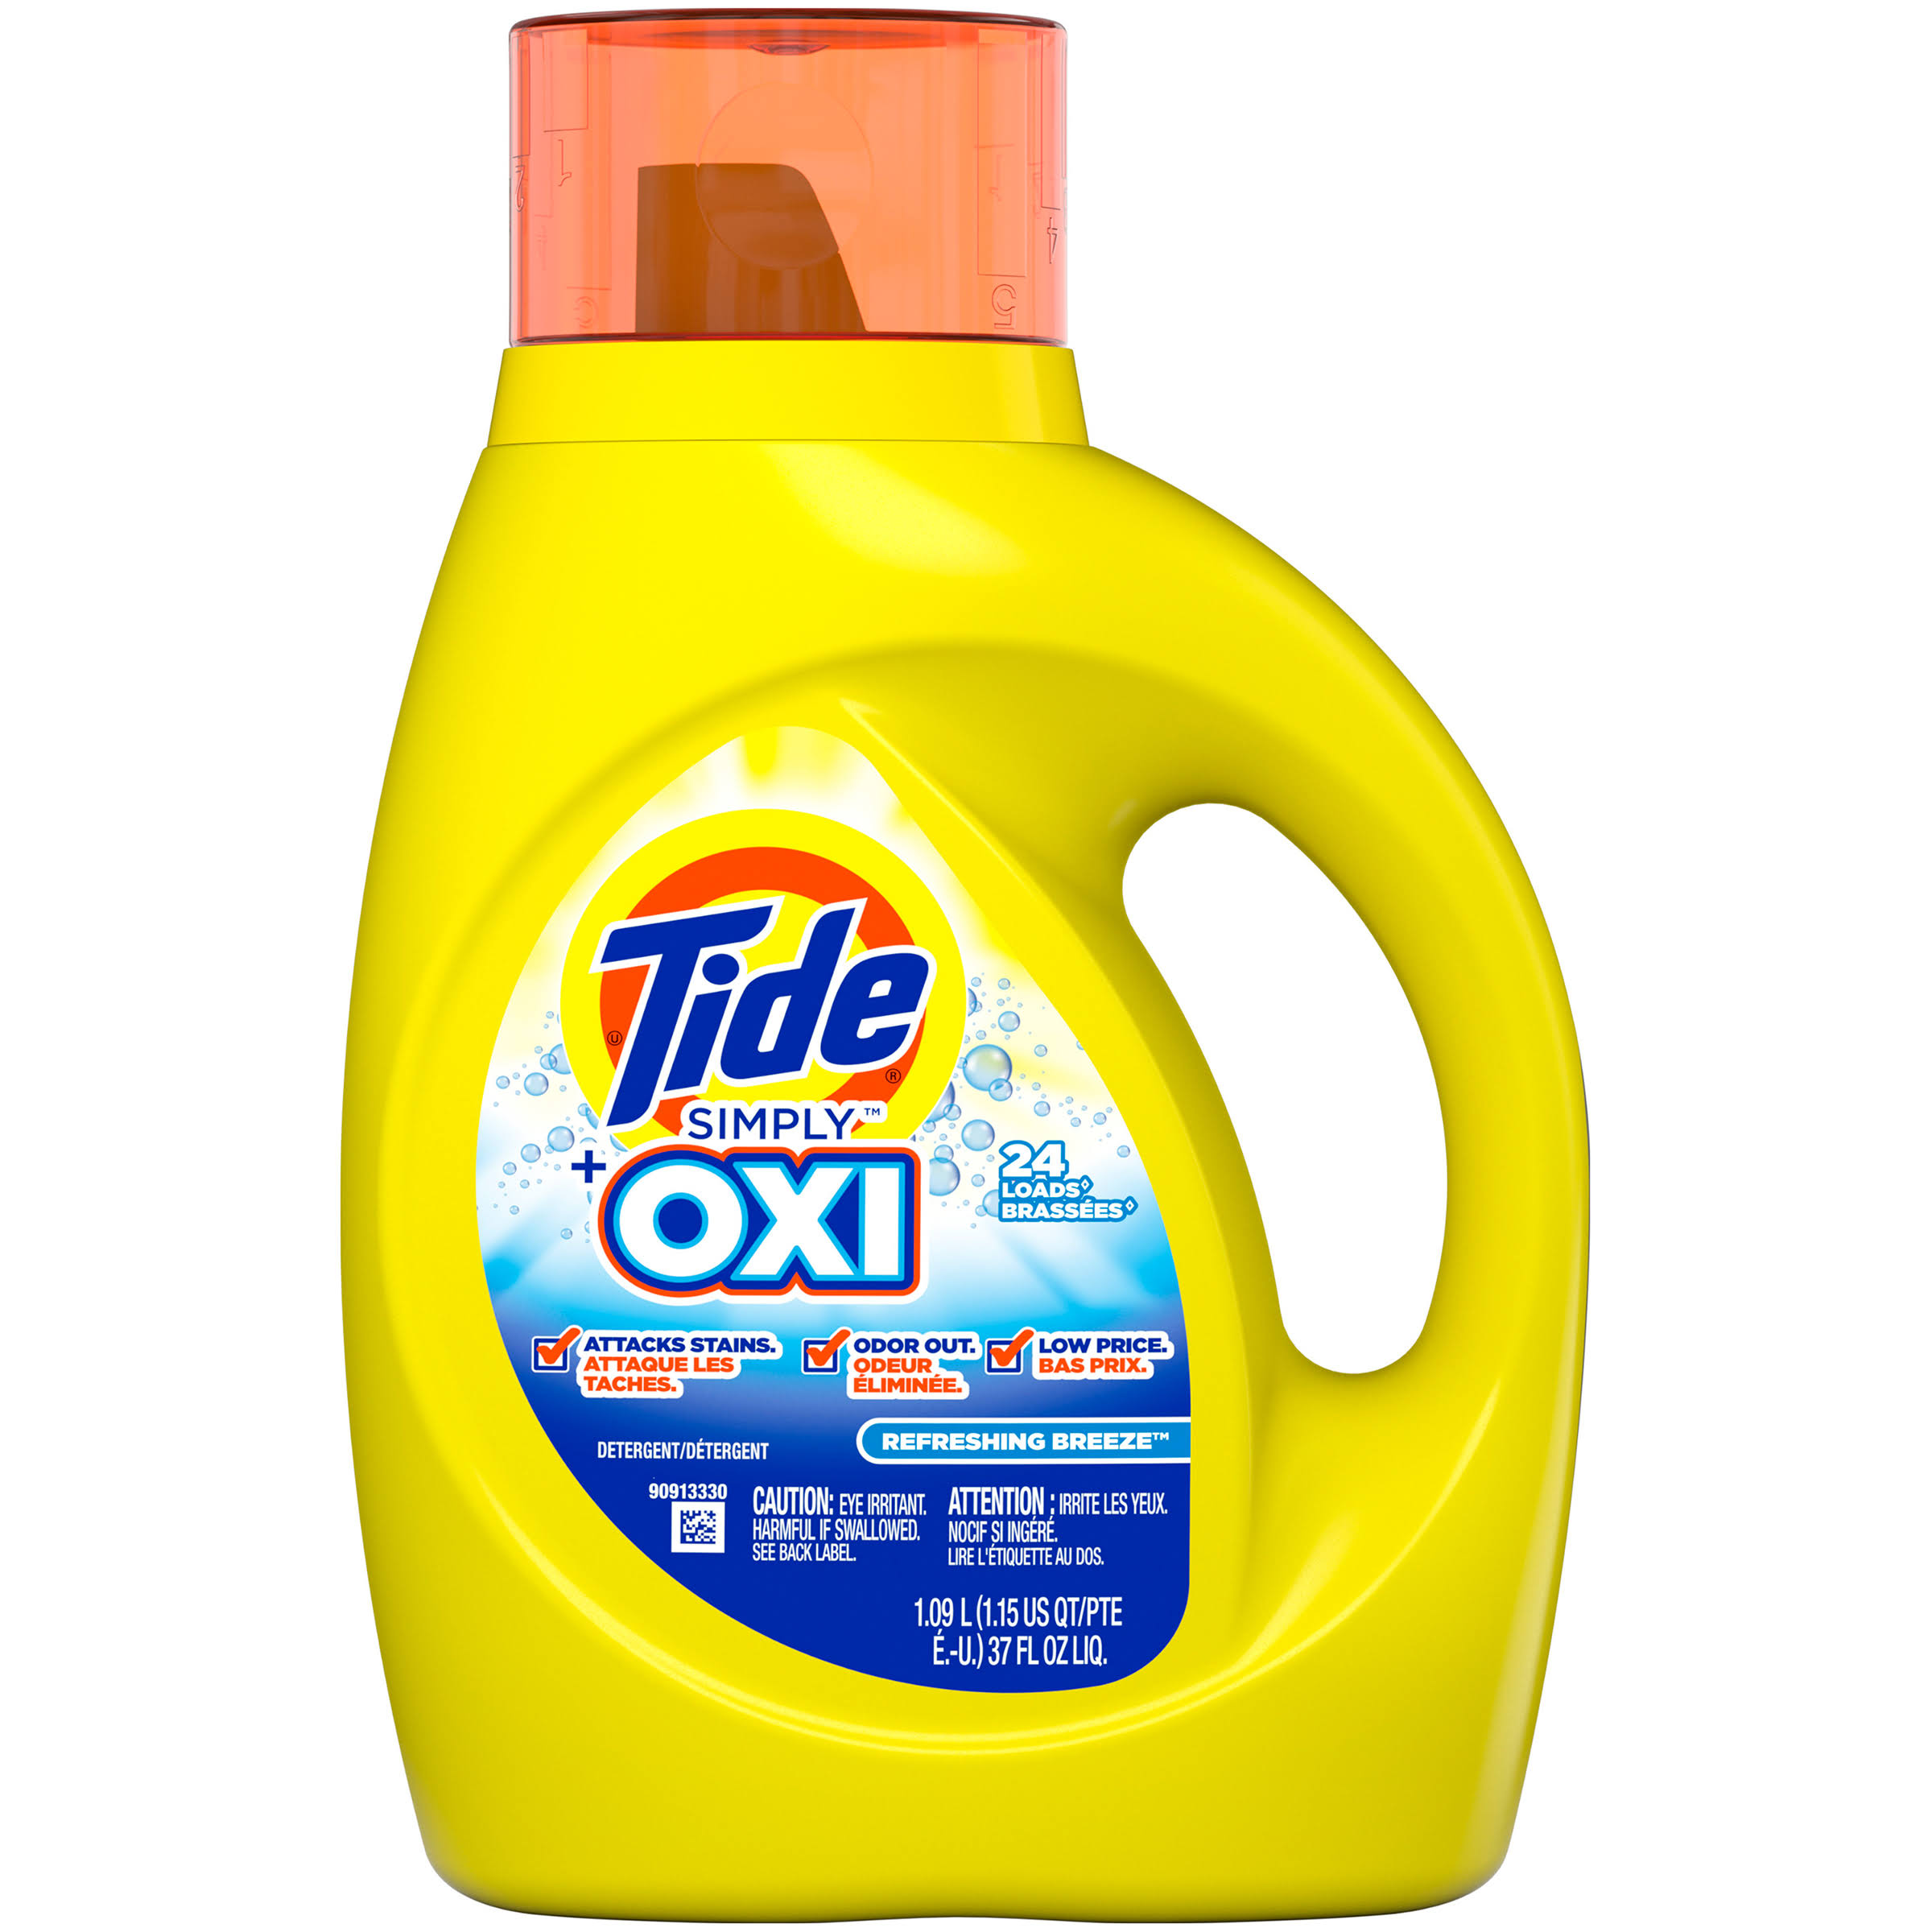 Tide Simply Plus Oxi Liquid Laundry Detergent - 37oz